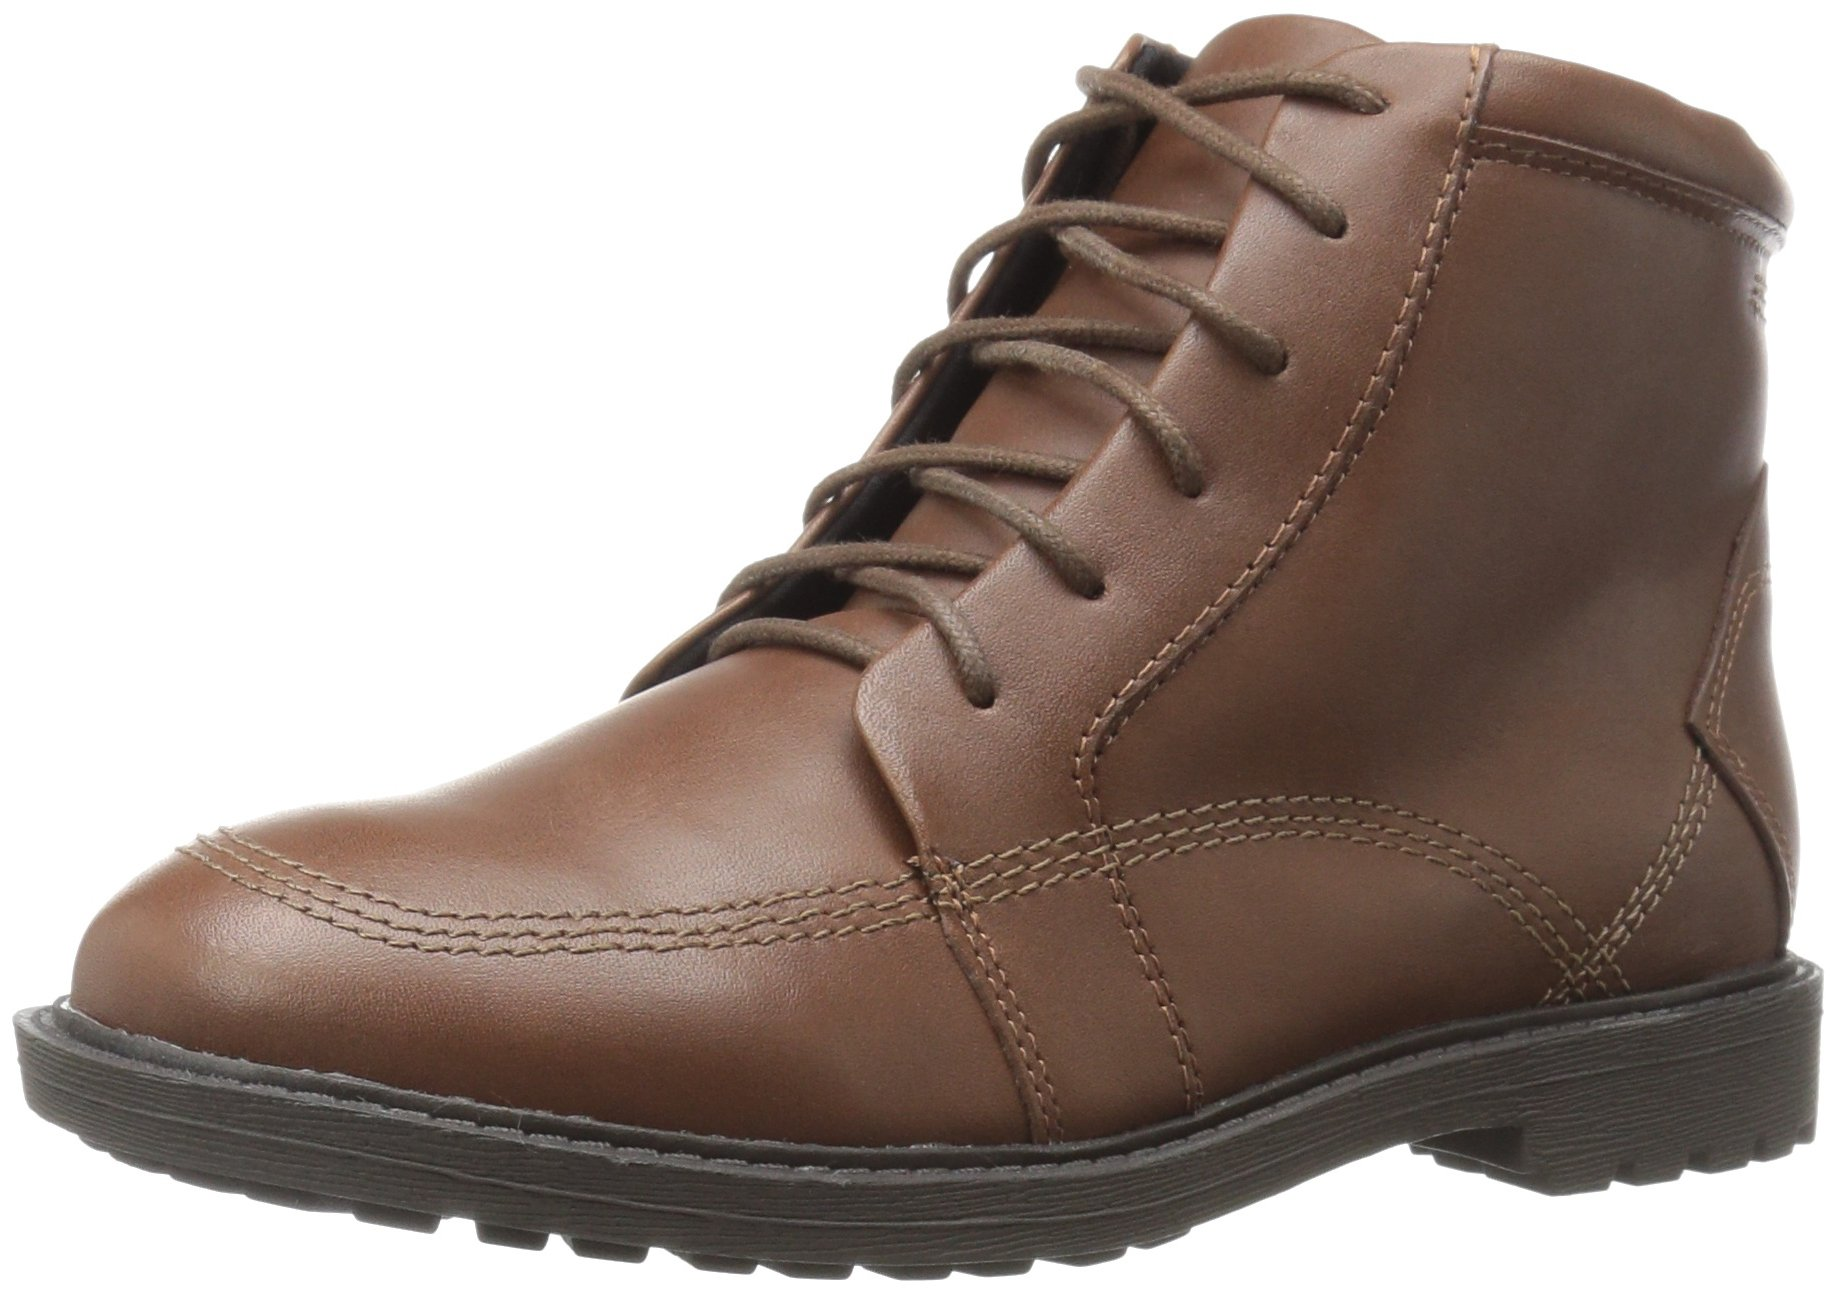 Kenneth Cole REACTION Boys' Strada Boot-K Bootie, Brown, 2 M US Little Kid